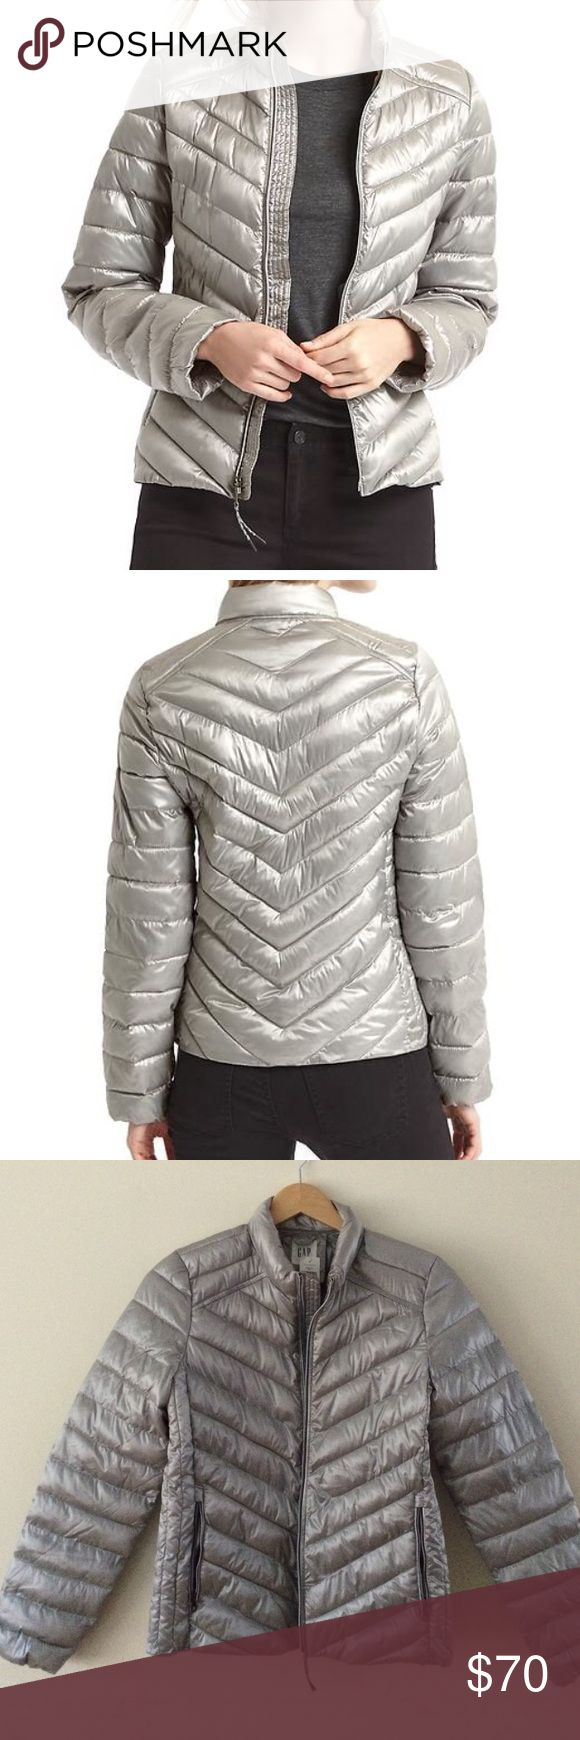 💥$10 off💥Gap Jacket💥HP💥 💥$10 off Today Only💥✨Bundling not included✨I will change price when ready to purchase. Lightweight puffers with PrimaLoft warmth without the bulk, water resistant and long sleeves to keep the cold out. Still available on Gap.com $110 GAP Jackets & Coats Puffers